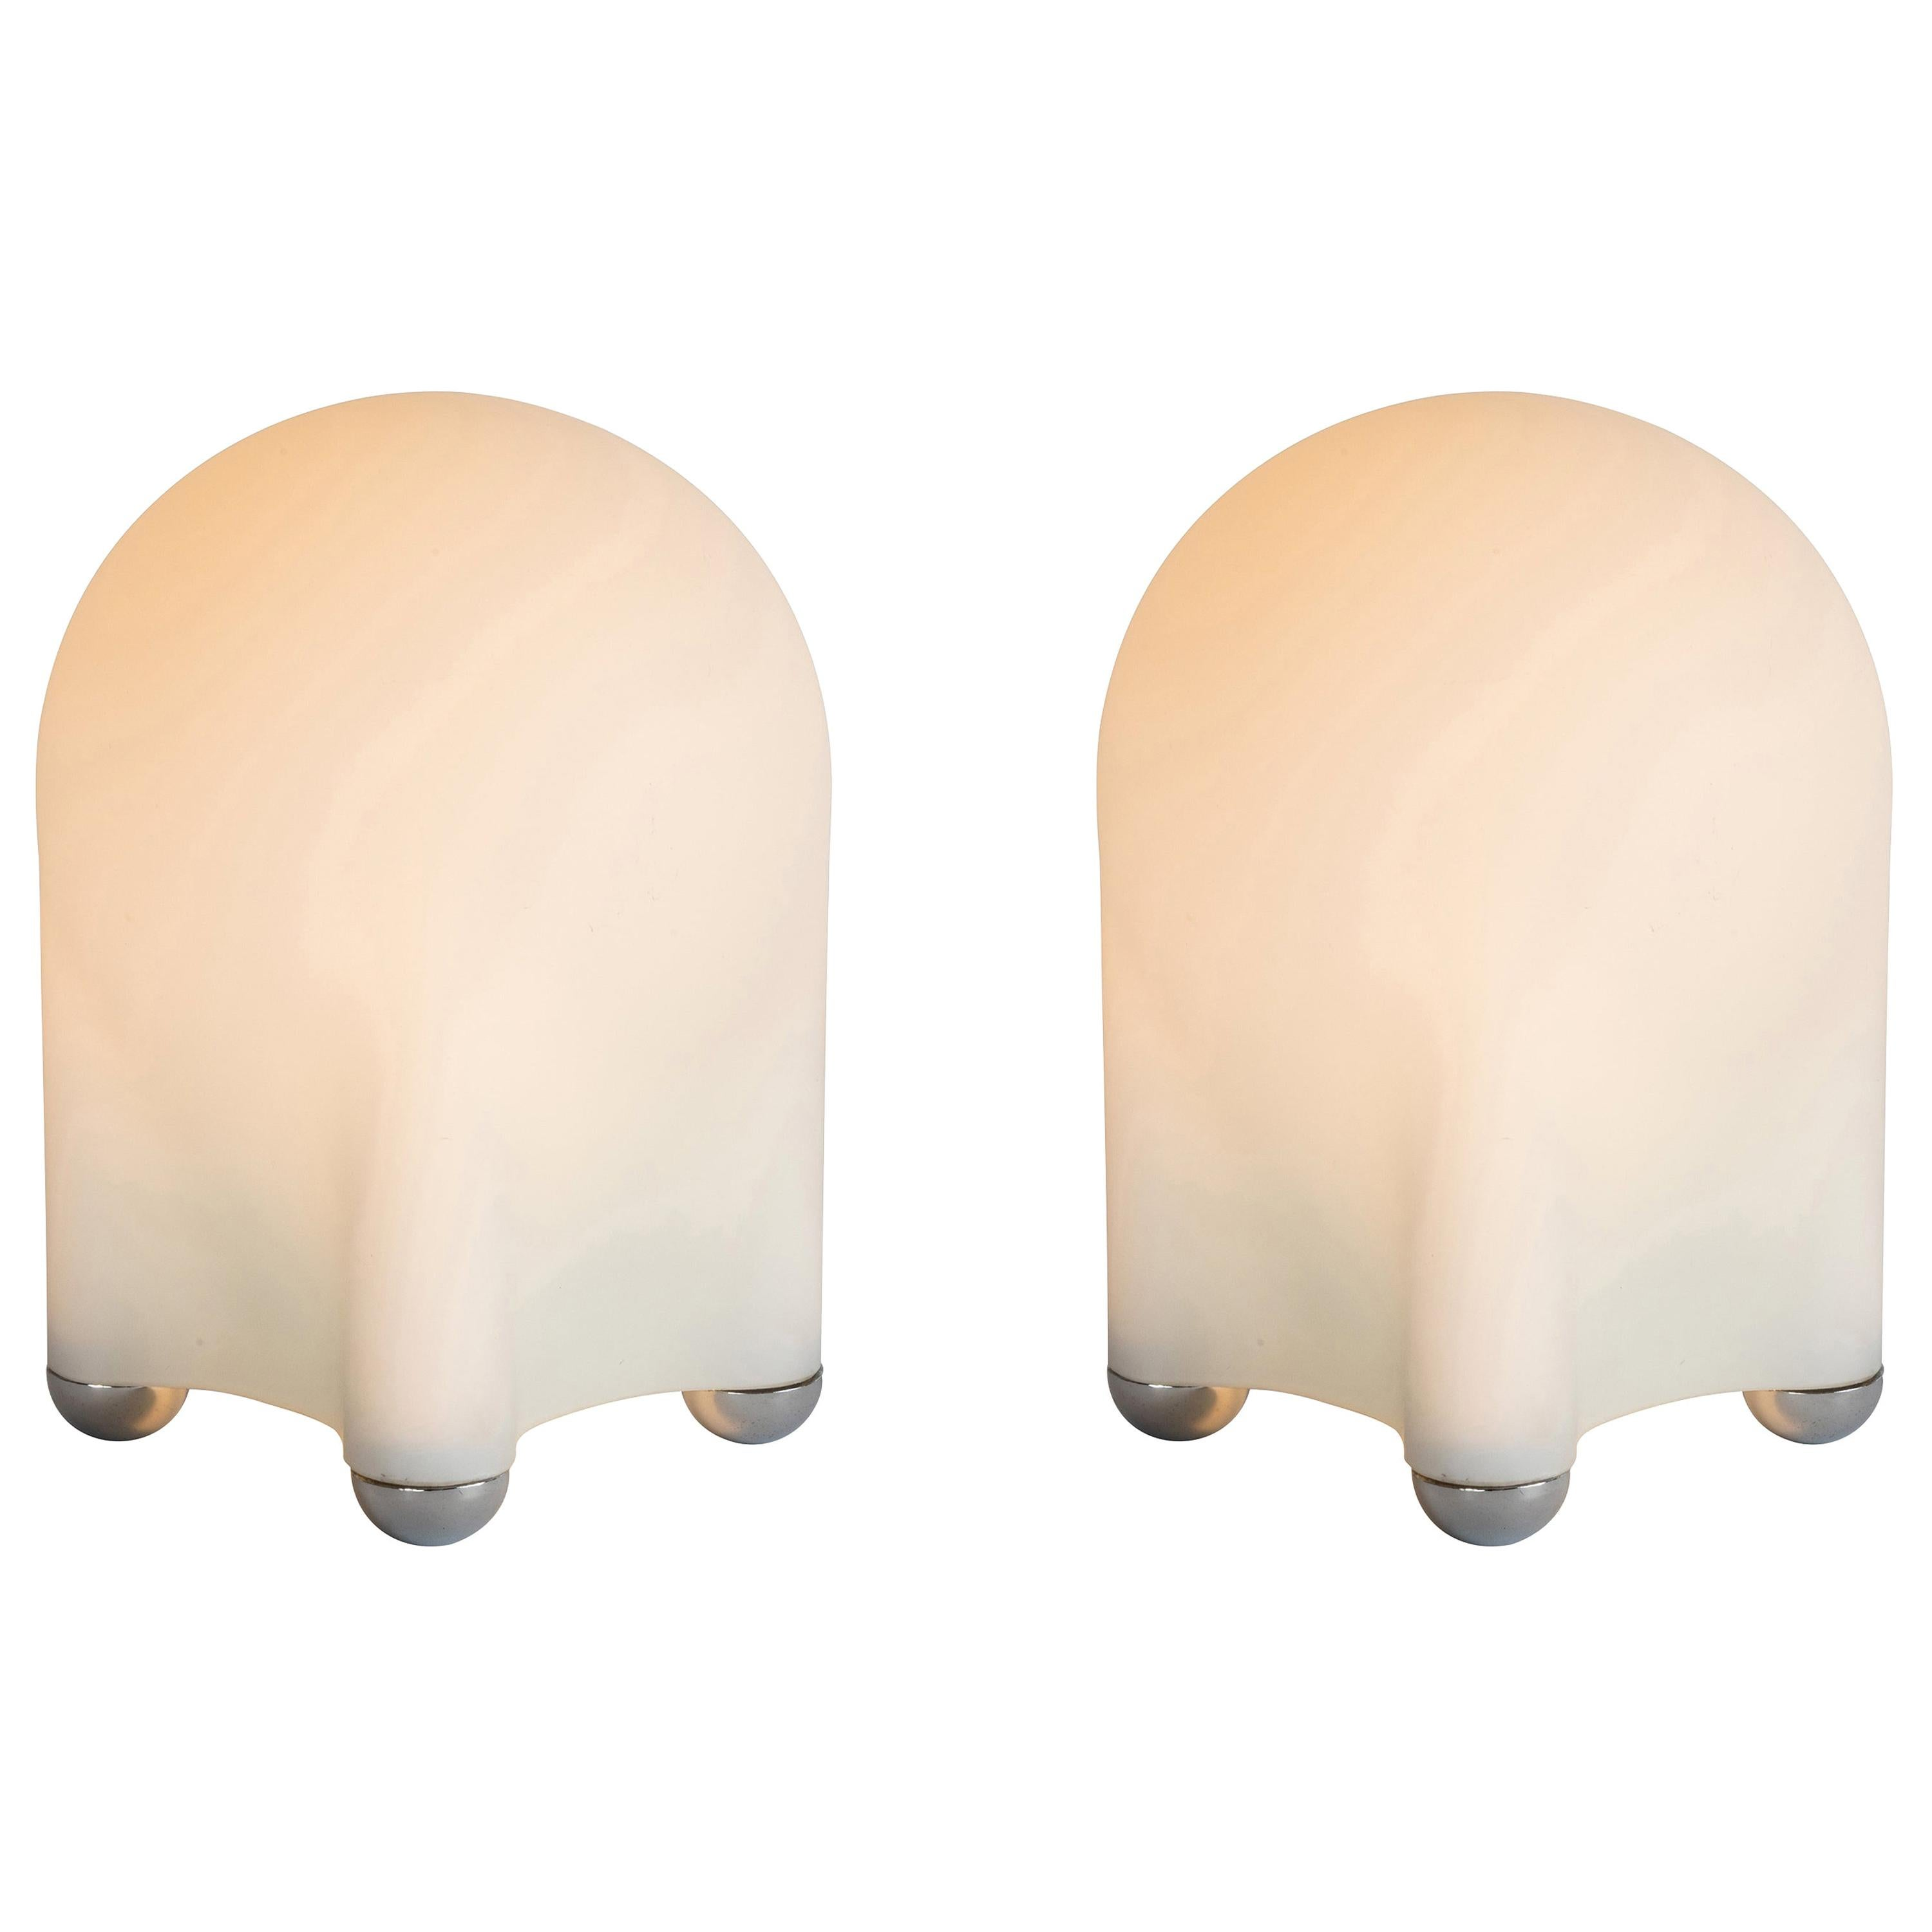 Pair of Giotto Stoppino 'Drop' Table Lamps for Tronconi, circa 1970s